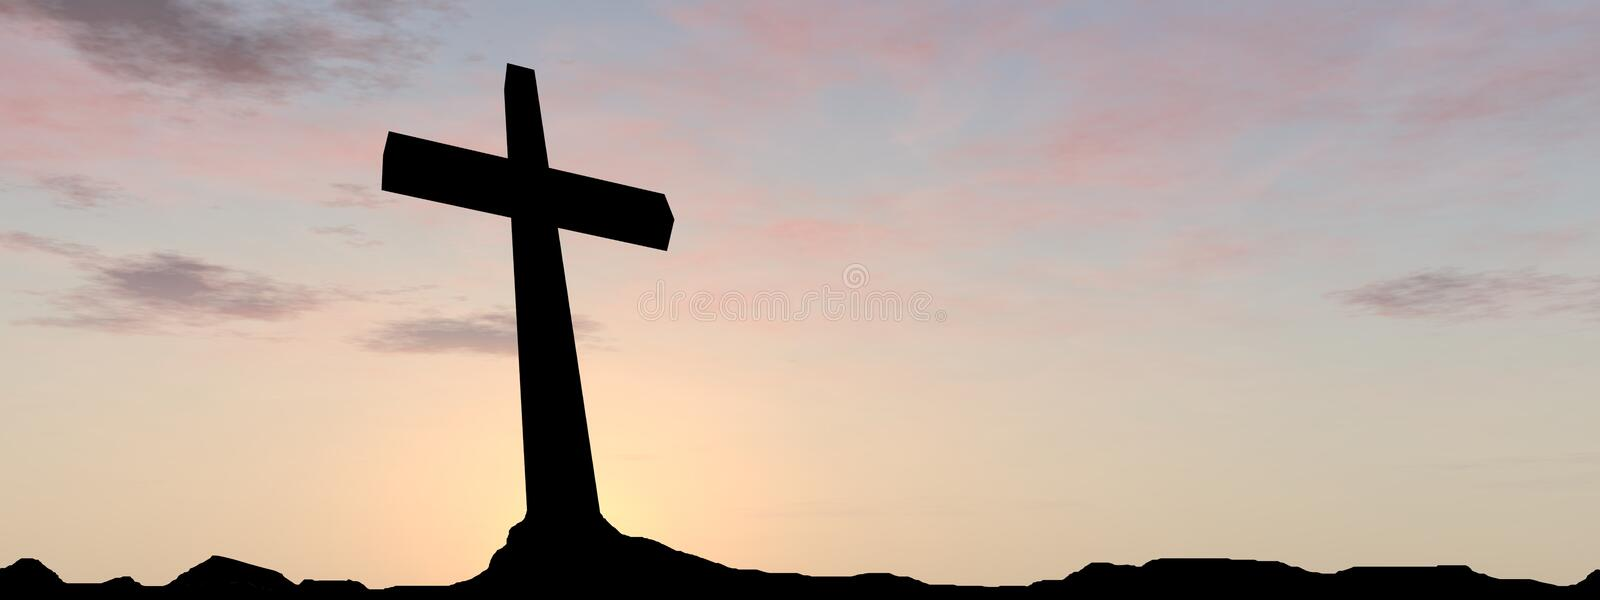 Conceptual religion cross with a man at sunset royalty free stock images